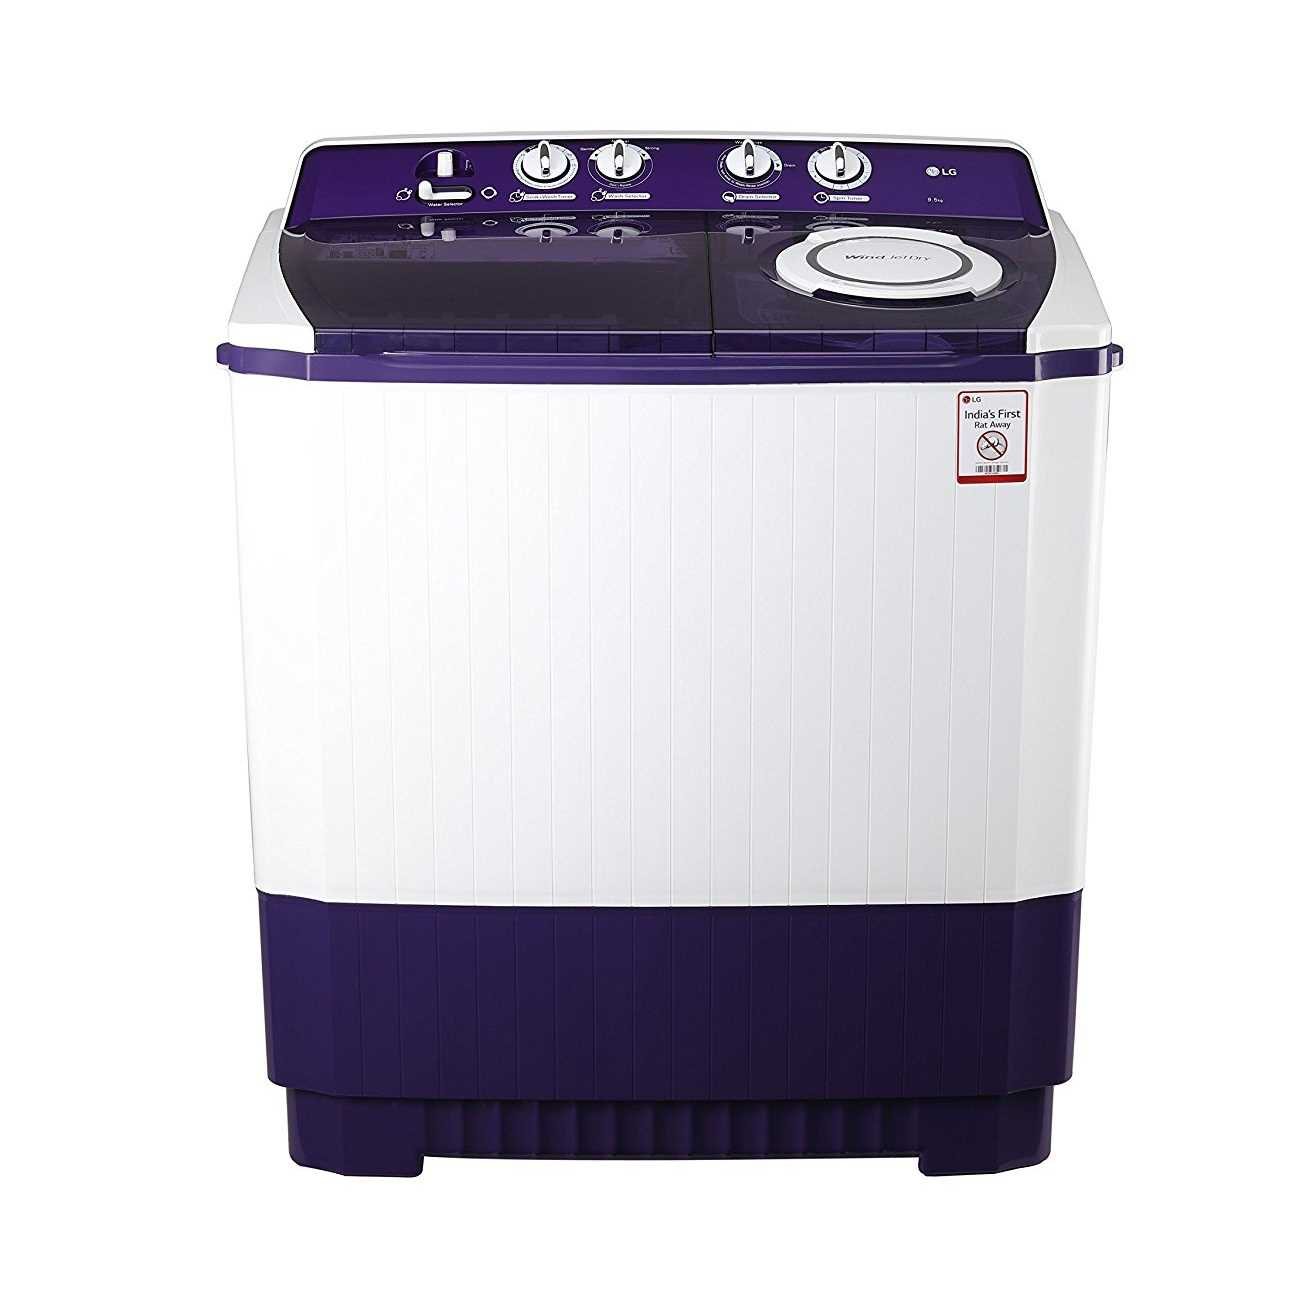 LG P1565R3SA 9.5 Kg Semi Automatic Top Loading Washing Machine